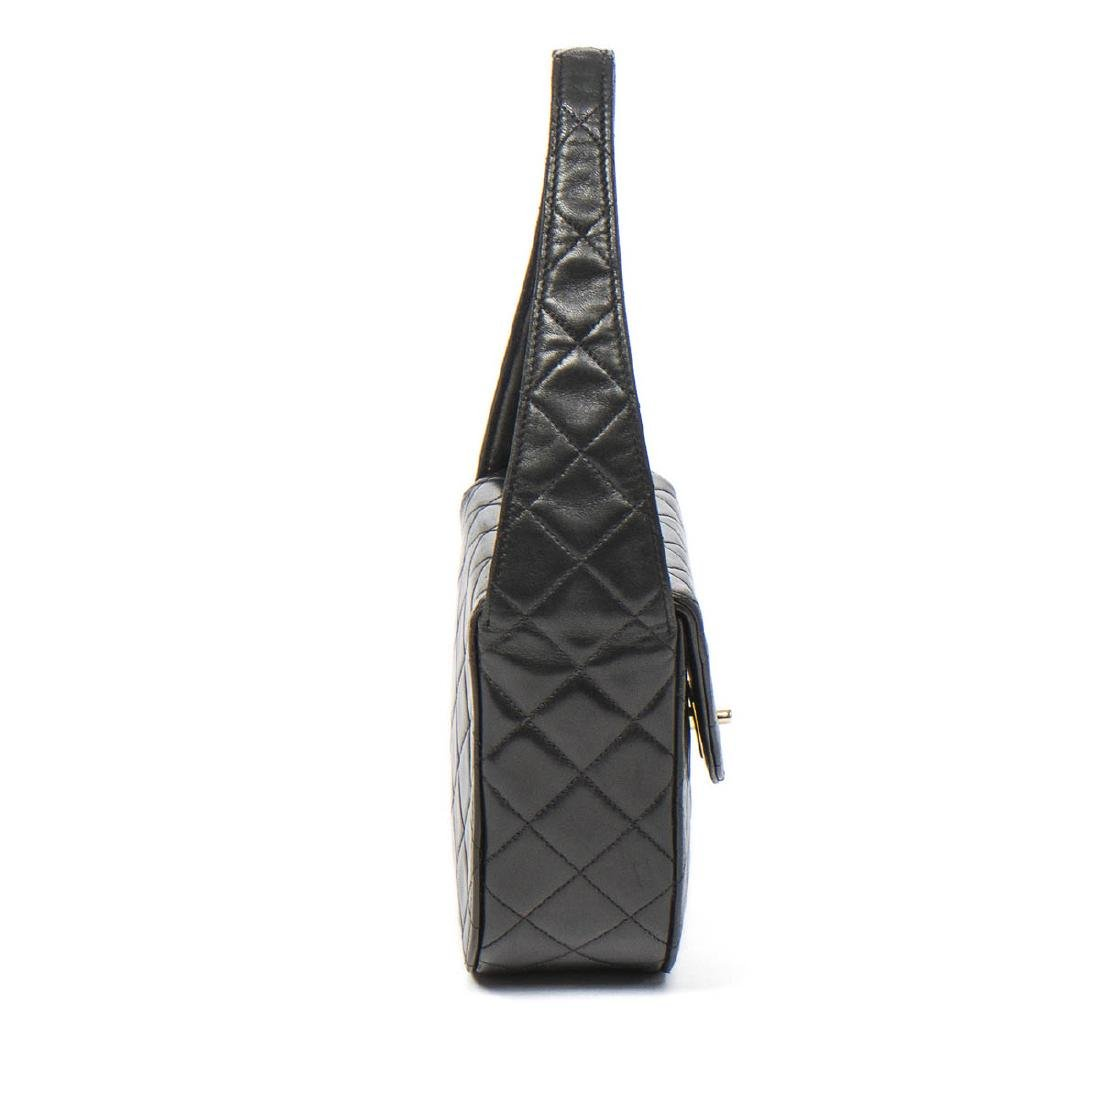 Chanel Make up Hand Bag in Black Quilted Leather - 4